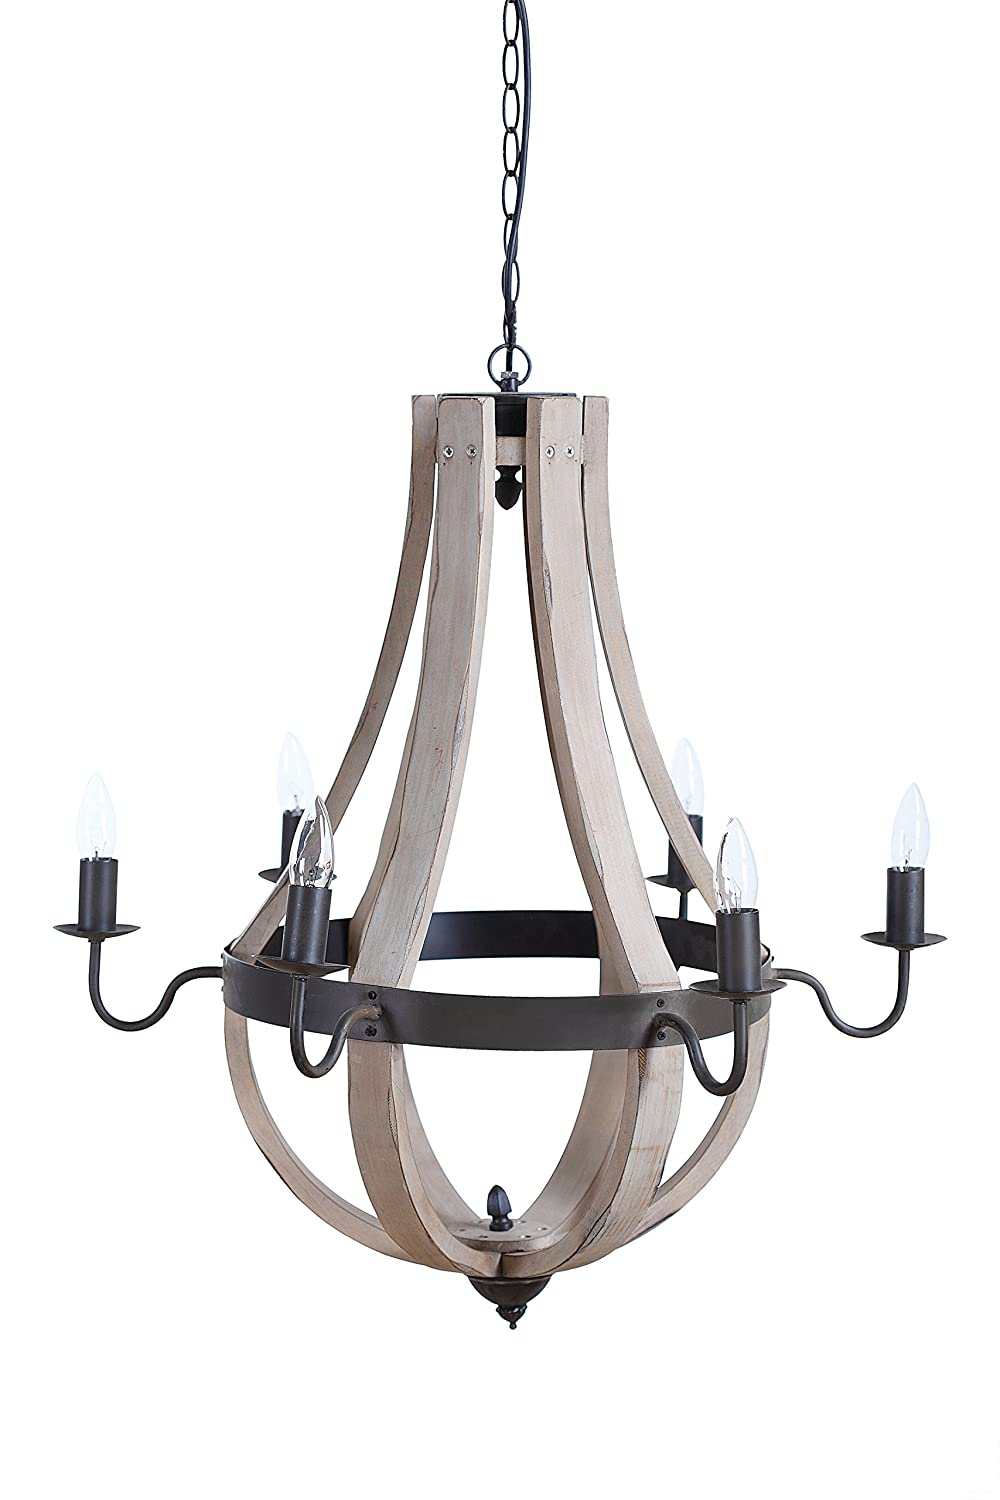 amazoncom creative co op wood and metal chandelier with 6 lights 27 round by 27 height home kitchen amazing wooden chandelier